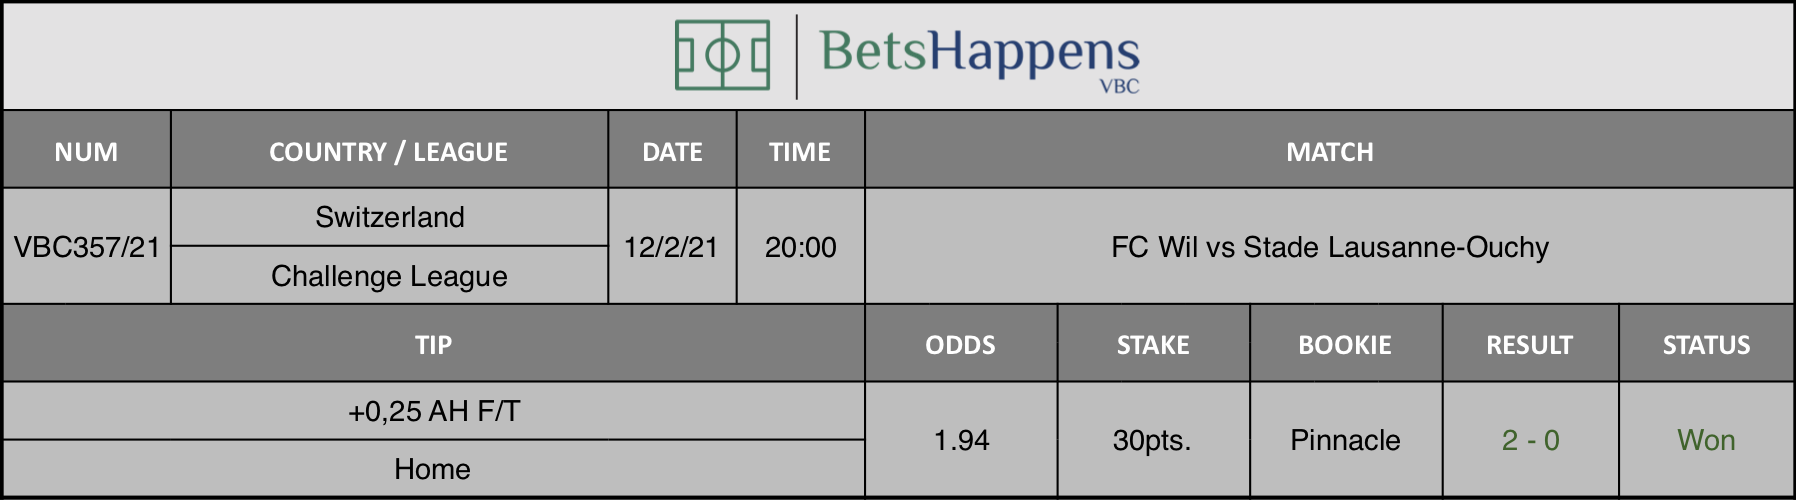 Results of our tip for the FC Wil vs Stade Lausanne-Ouchy match where +0,25 AH F/T - Home is recommended.